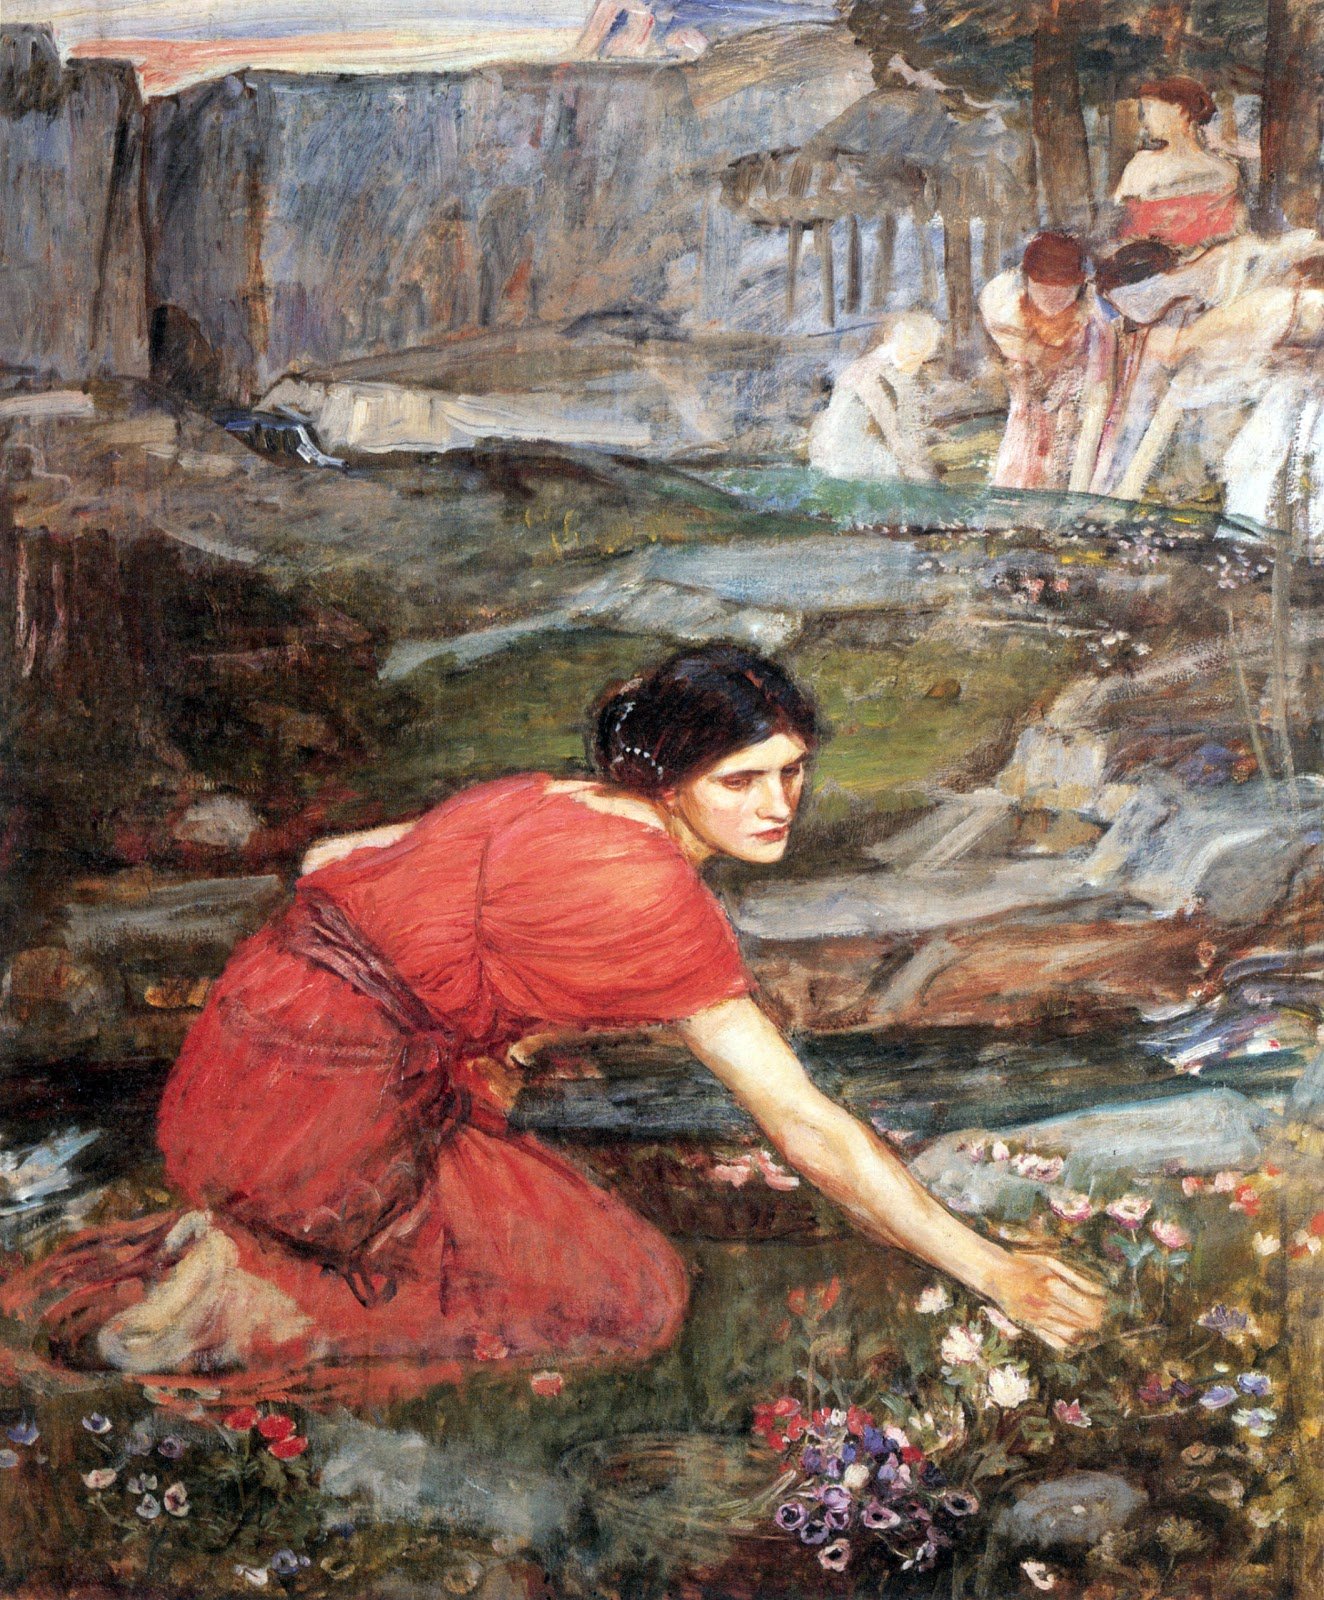 http://4.bp.blogspot.com/-AmFcUqjIhTM/TxW_ZKWYUVI/AAAAAAAAGqY/rbo0CbEn60g/s1600/John+William+Waterhouse+-+Maidens+picking+Flowers+by+a+Stream.jpg